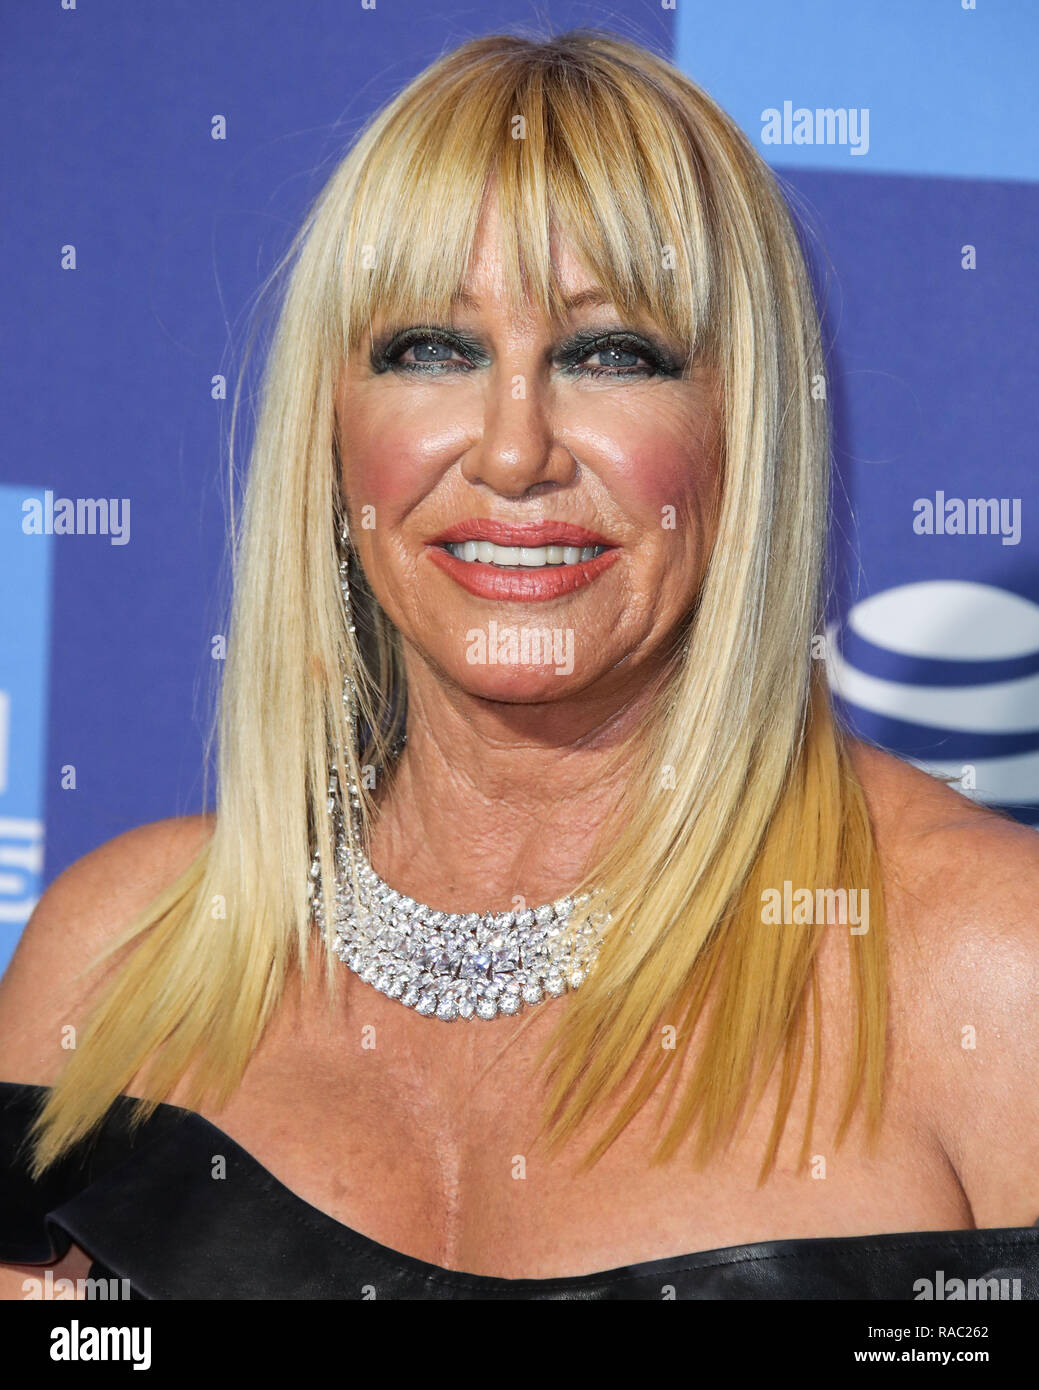 Palm Springs, California, USA. 3rd January, 2019. Suzanne Somers arrives at the 30th Annual Palm Springs International Film Festival Awards Gala held at the Palm Springs Convention Center on January 3, 2019 in Palm Springs, California, United States. (Photo by Xavier Collin/Image Press Agency) Credit: Image Press Agency/Alamy Live News - Stock Image